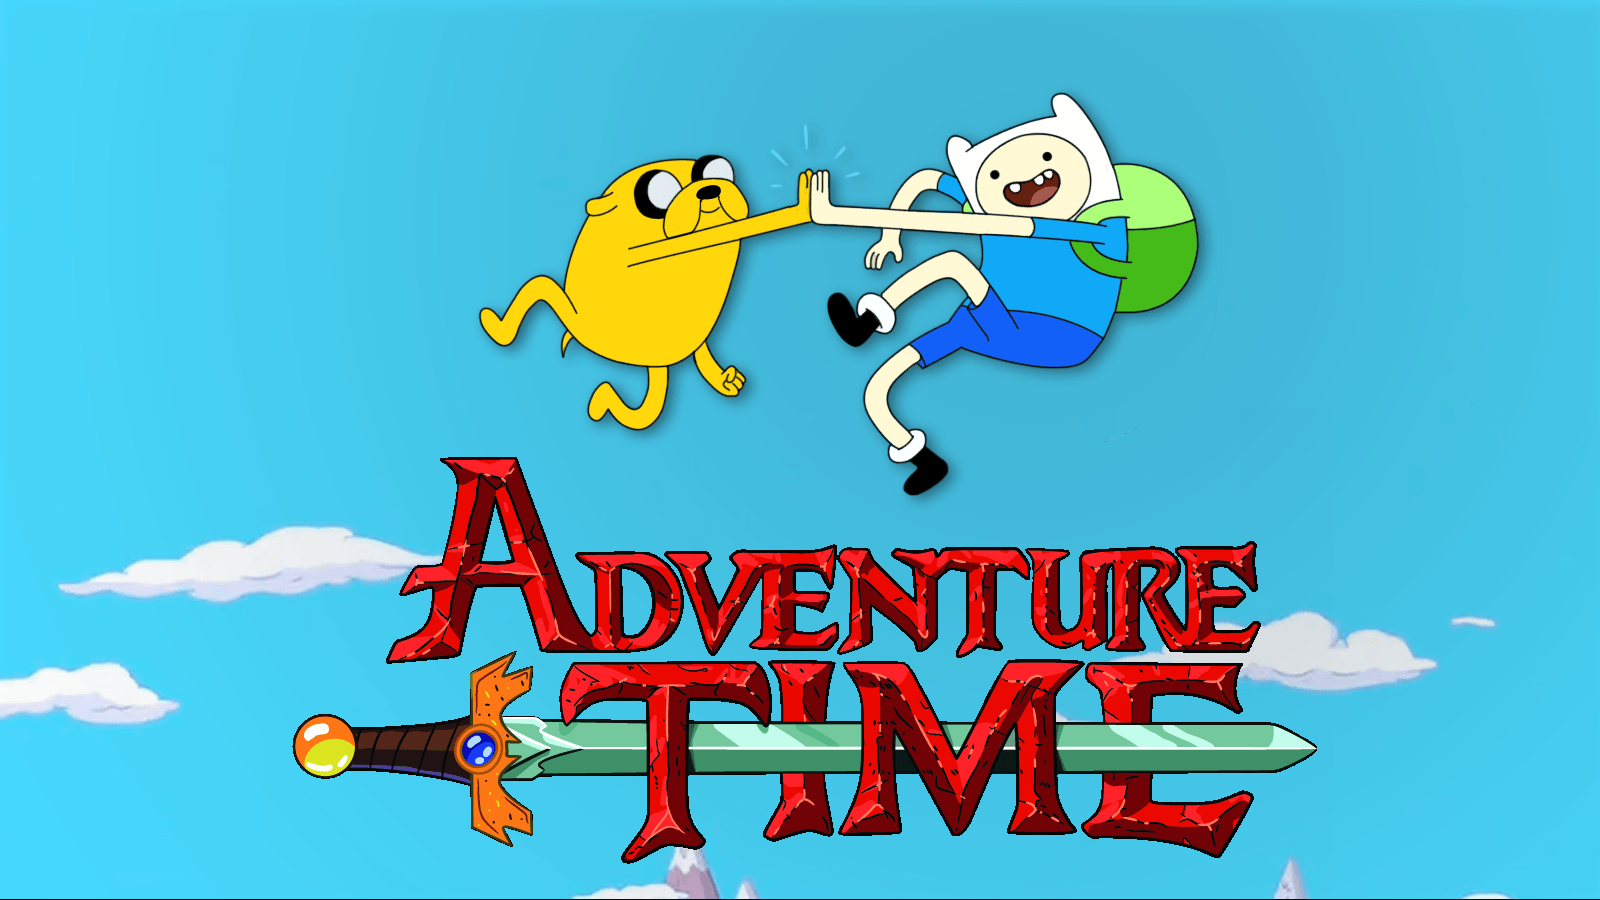 adventure time wallpapers download - photo #37